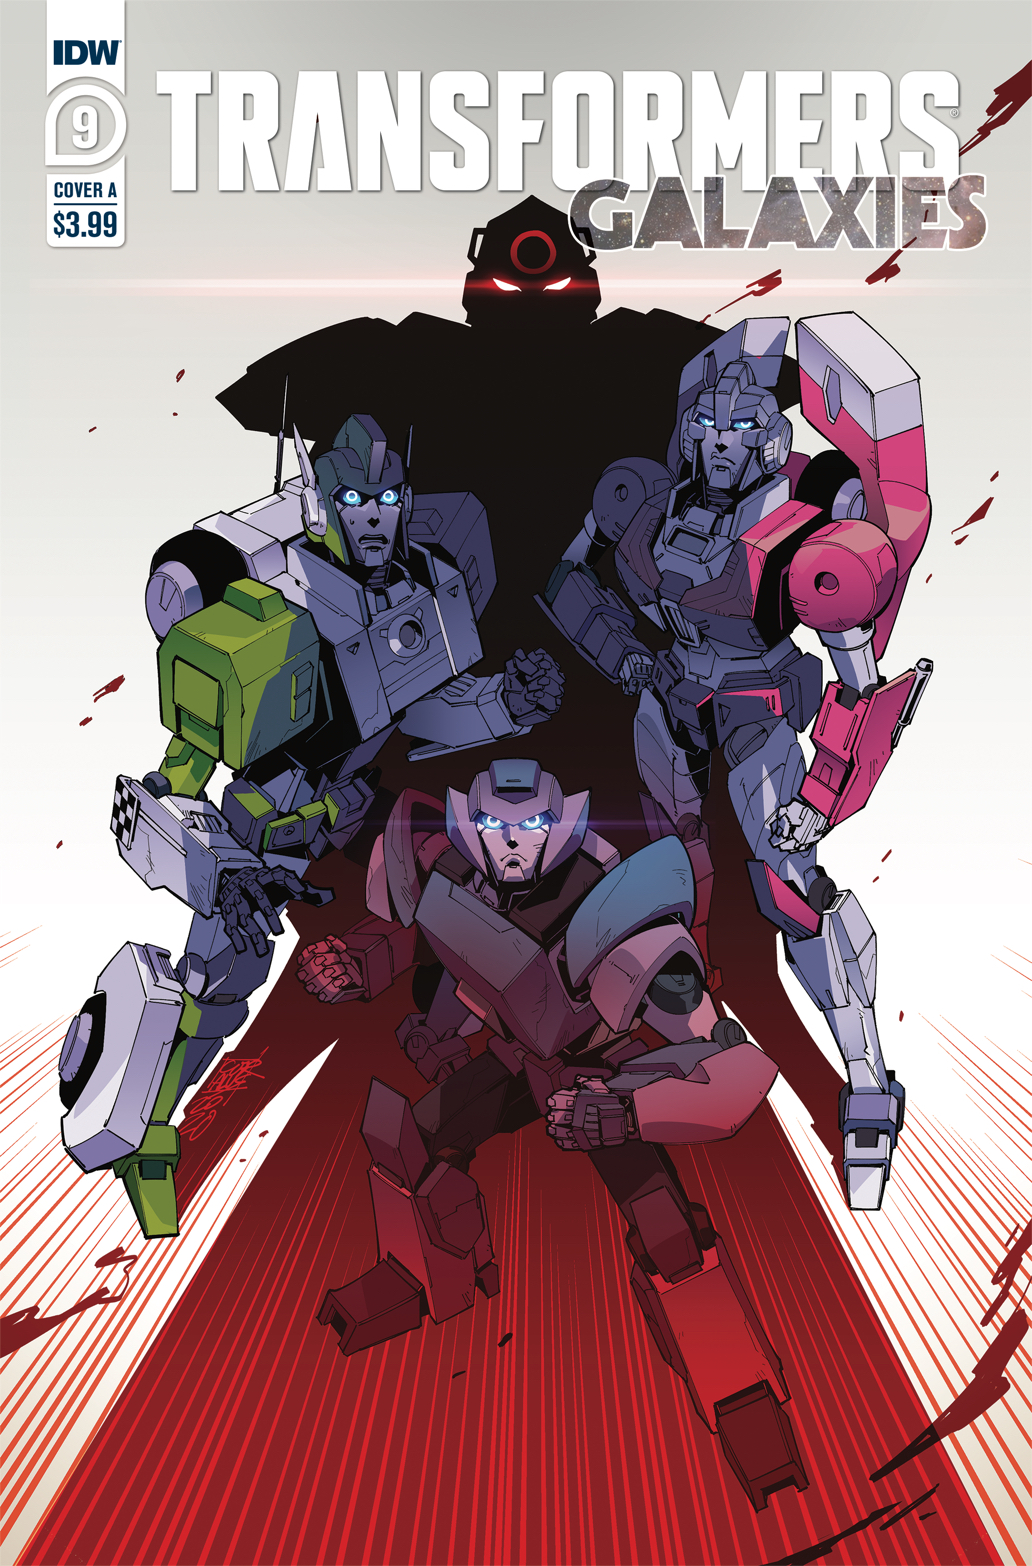 787314_3af62e726d0592f544596fc0501e6de4d1da8f7c ComicList: IDW Publishing New Releases for 09/09/2020